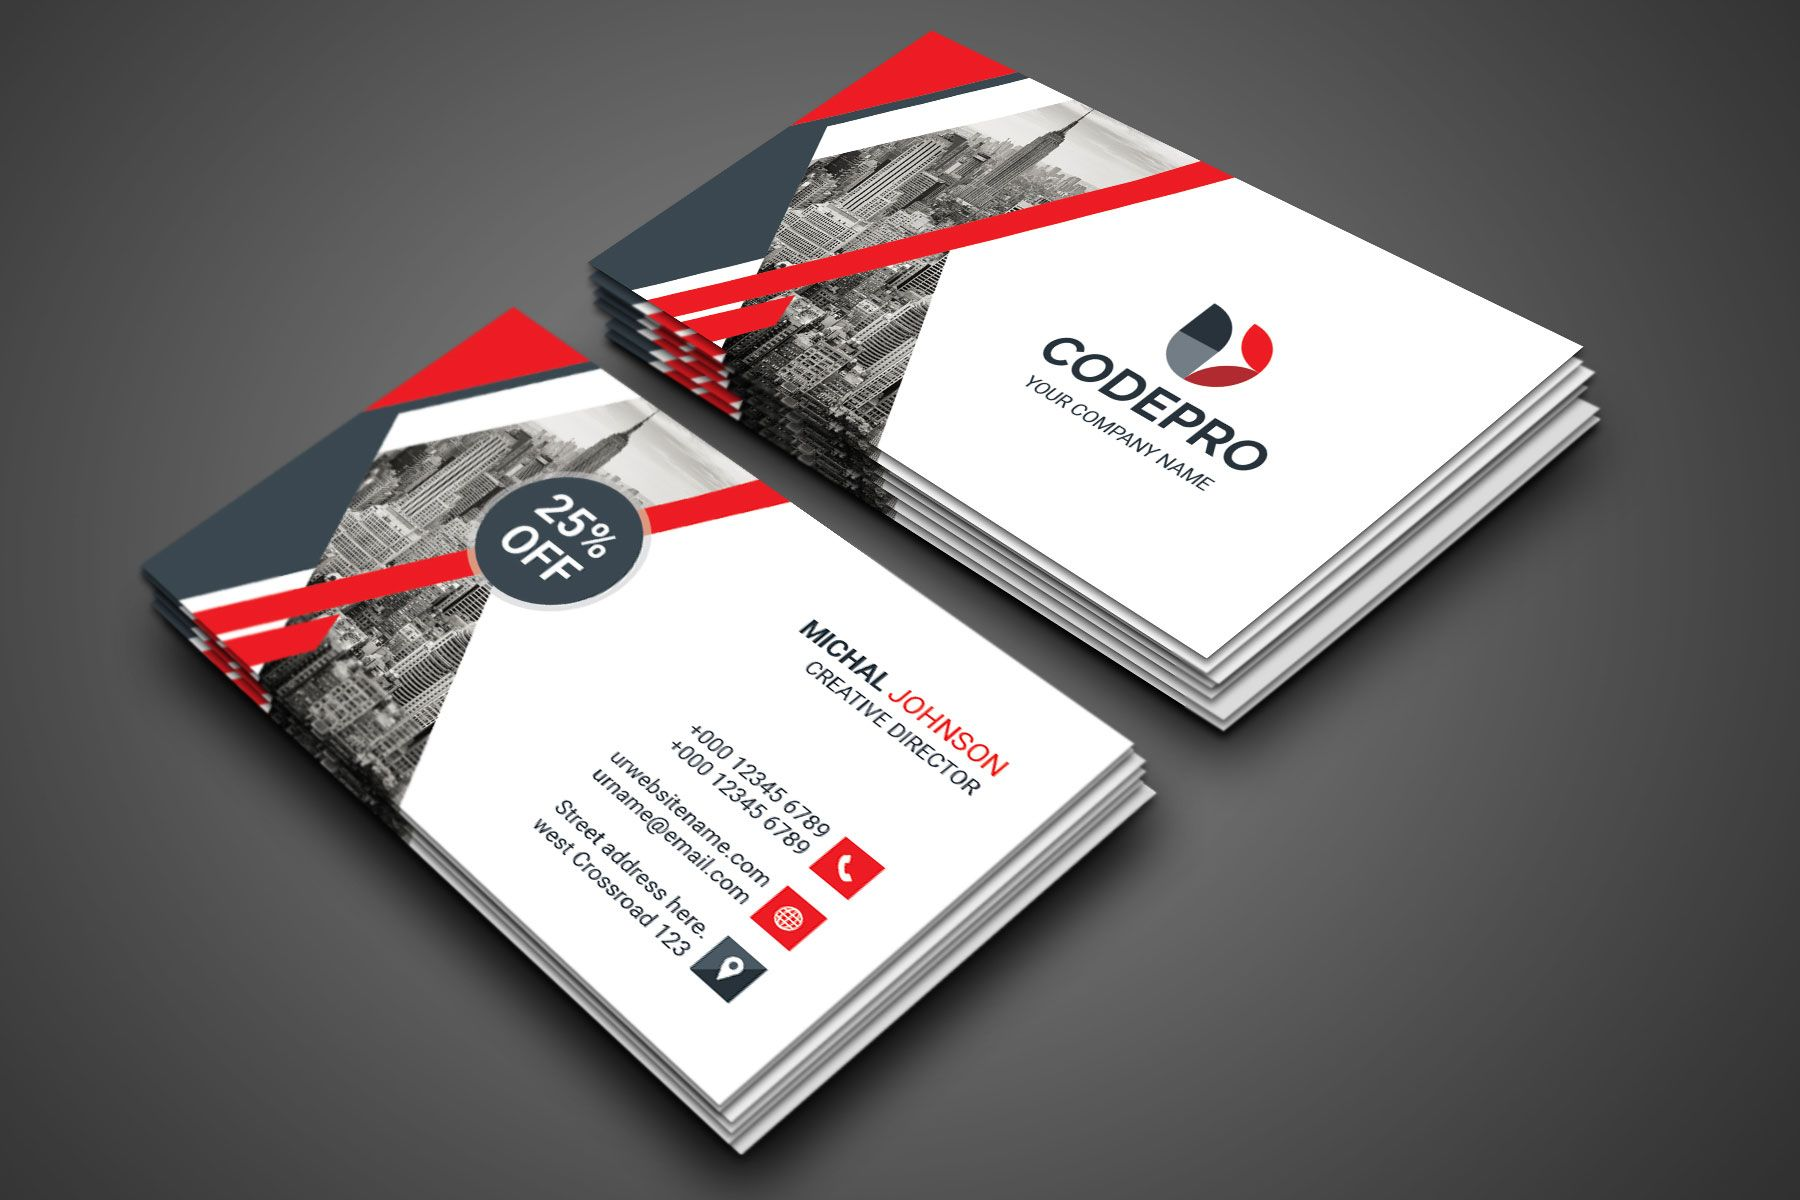 Psd Excellent Business Card Graphic Prime Graphic Design Templates Business Card Graphic Business Card Template Psd Professional Business Card Design